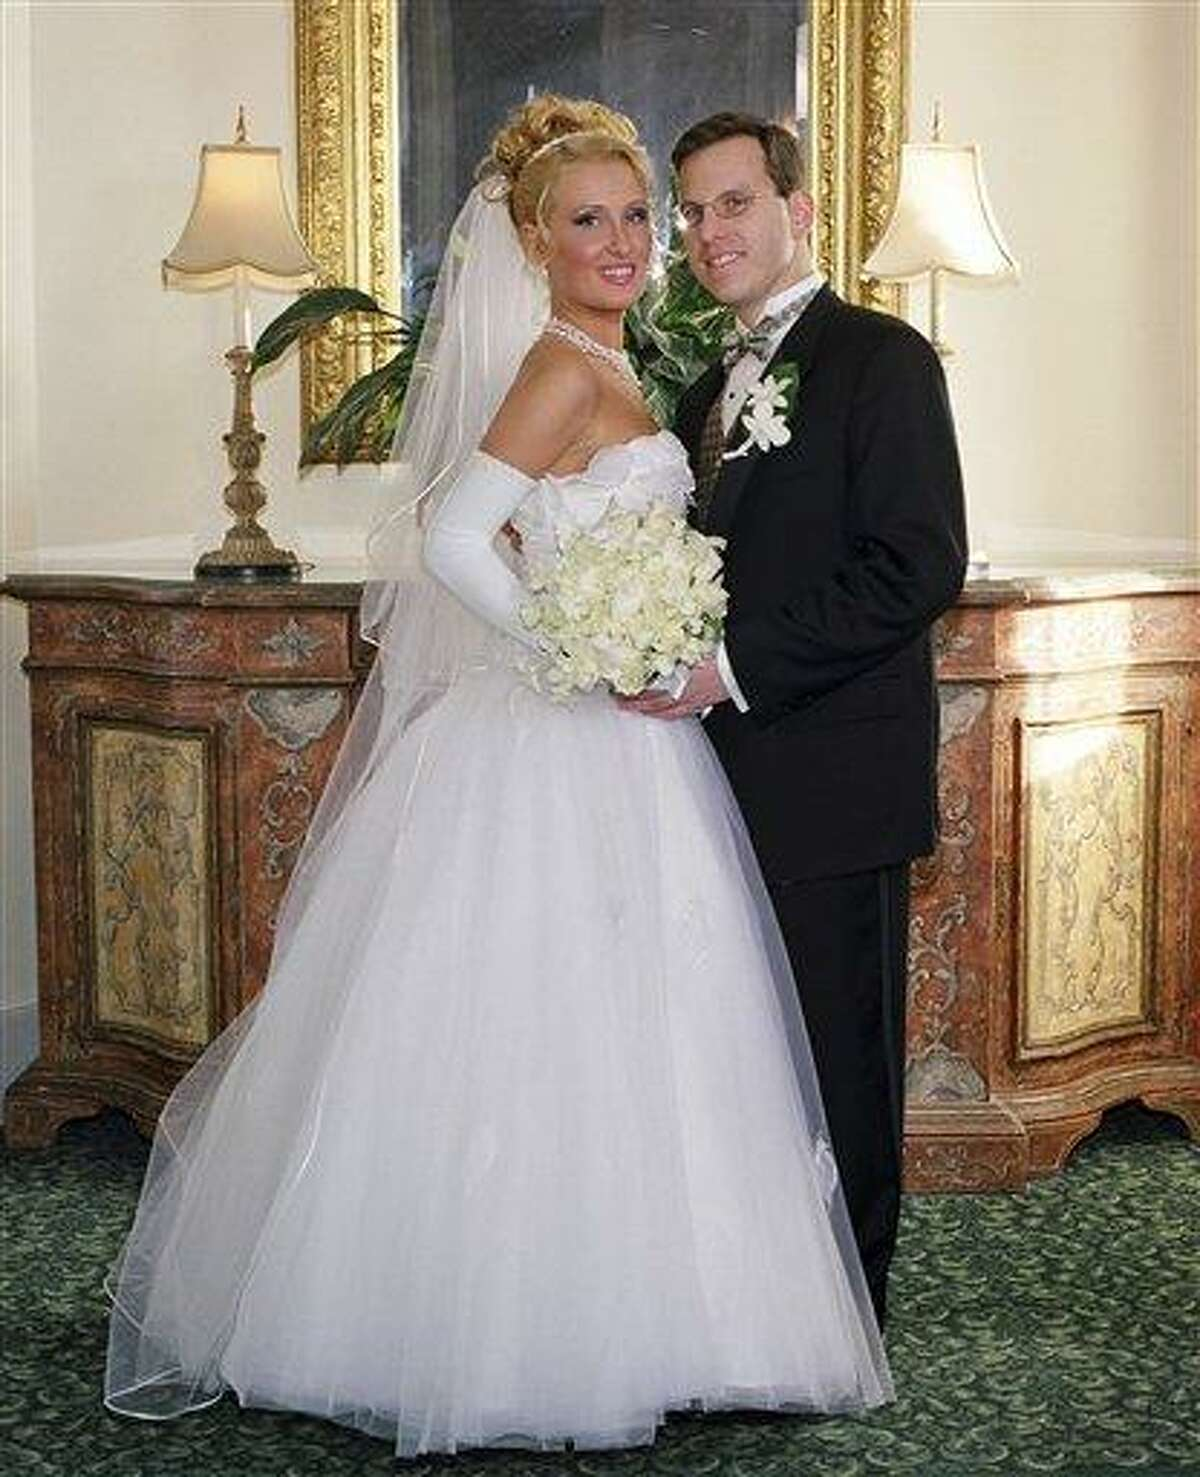 In this Dec. 2003 photo provided to the Associated Press by H&H Photographers, Todd Remis is shown with his then-bride Milena Grzibovska of Latvia during their wedding at Castle-on-the Hudson in Tarrytown, N.Y. Remis, now divorced, sued H&H Photographers in 2009, saying the studio did a shoddy job of shooting the wedding and didn't make good on a promise to retouch the pictures; the studio says it stands by its work and offered to adjust the pictures. (AP Photo/H&H Photographers)